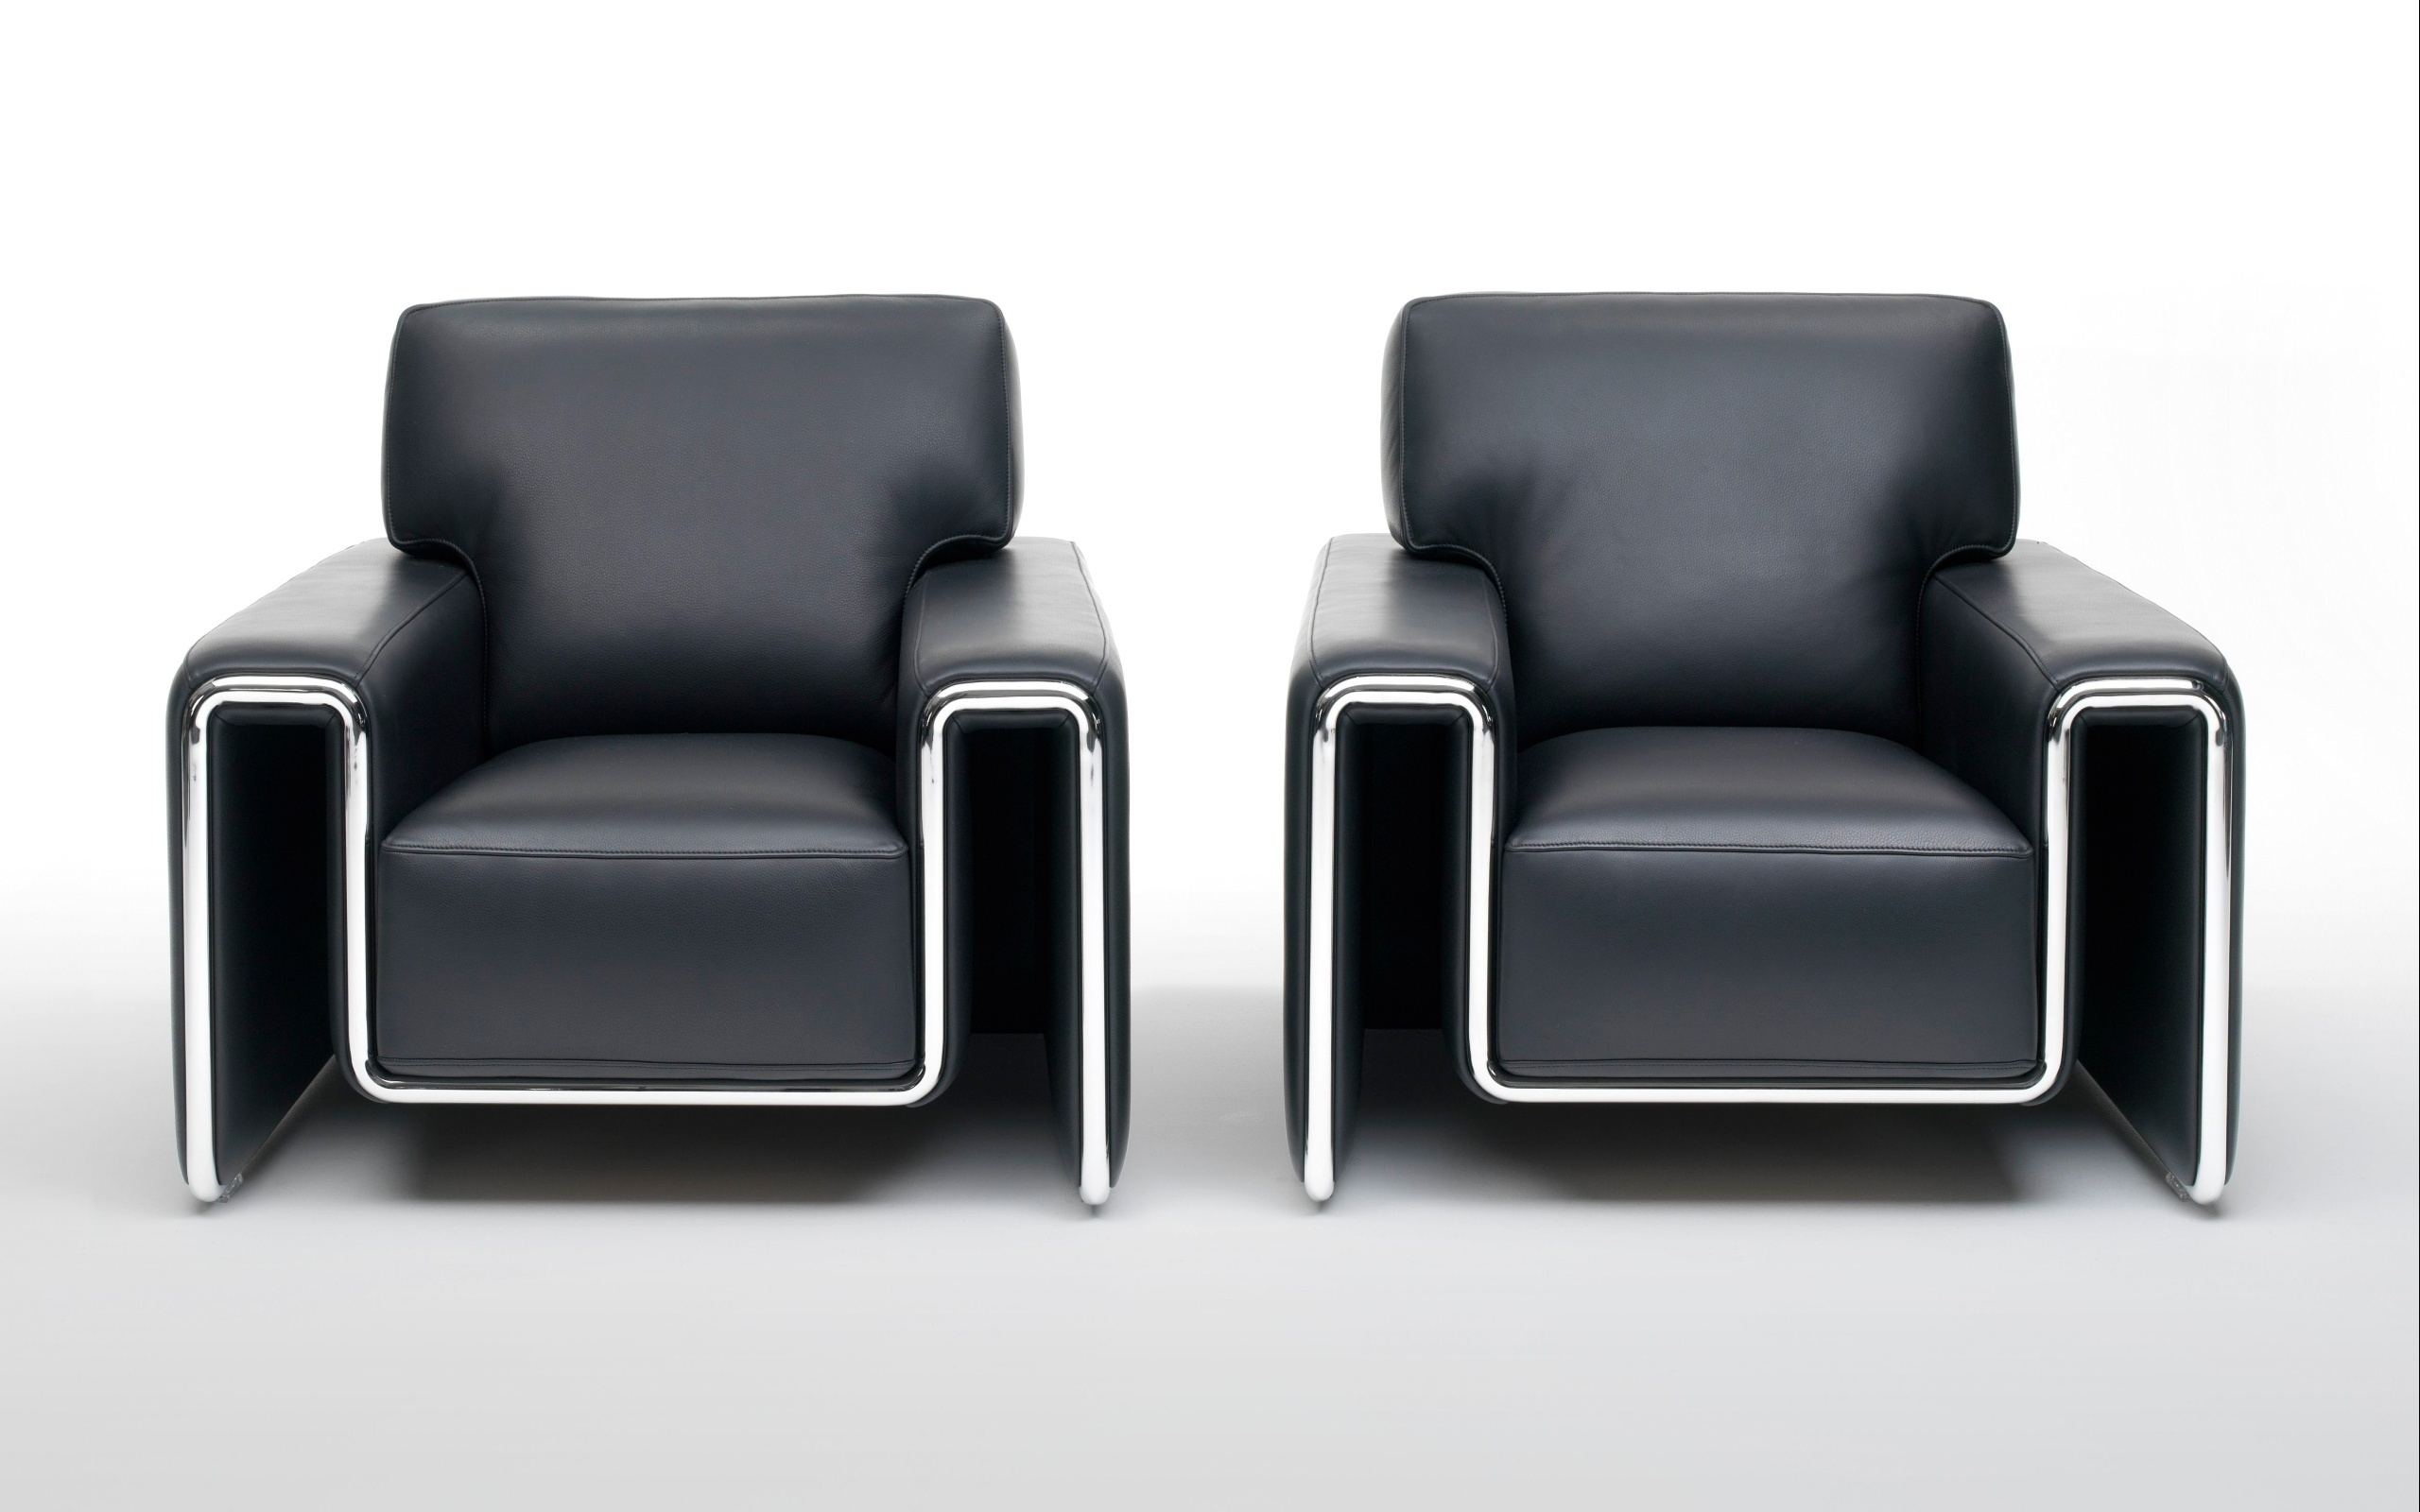 2560x1600 Black armchairs desktop PC and Mac wallpaper